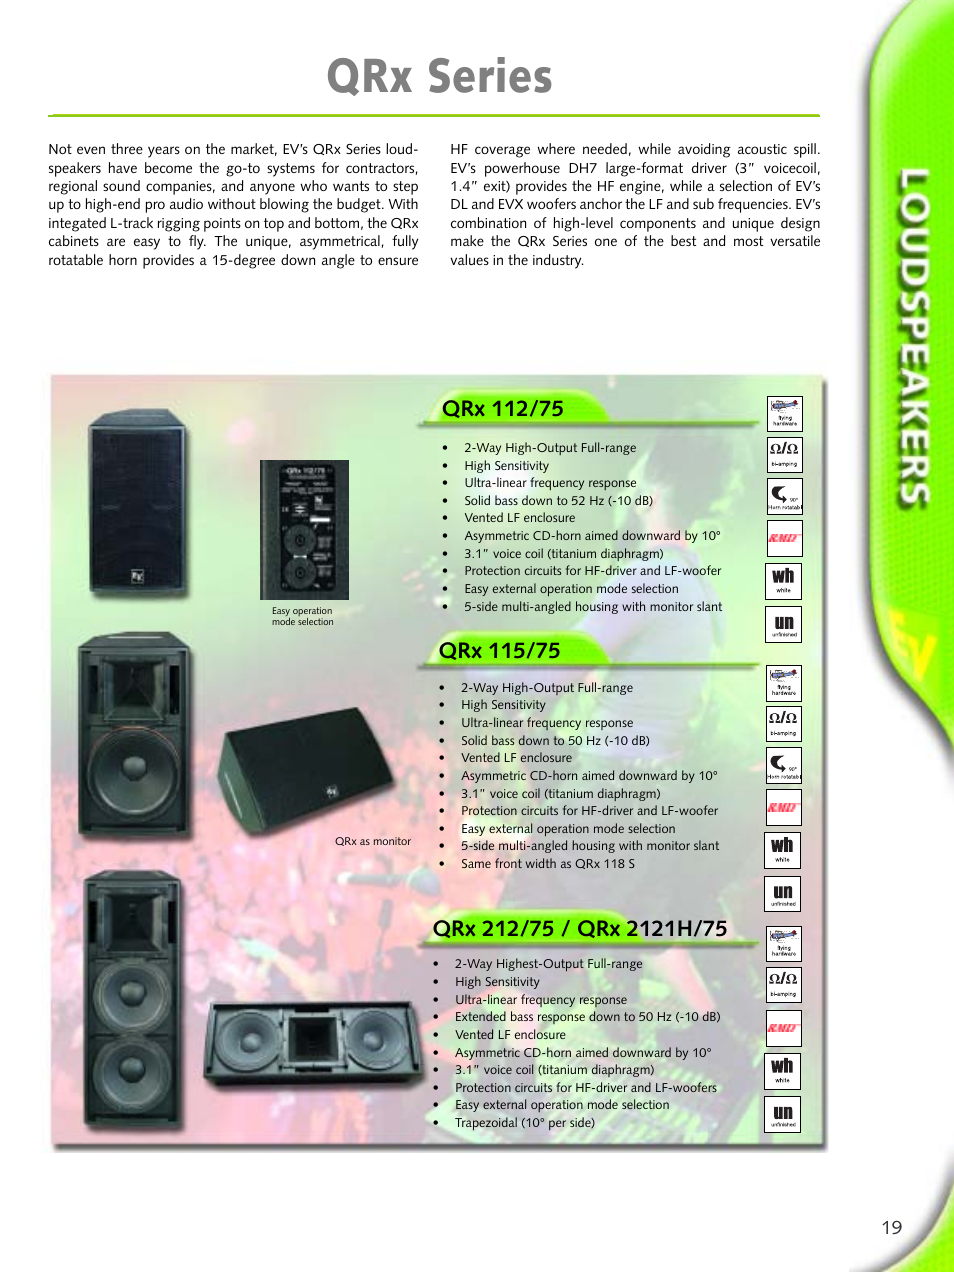 Qrx series | Electro-Voice Microphone User Manual | Page 19 / 92